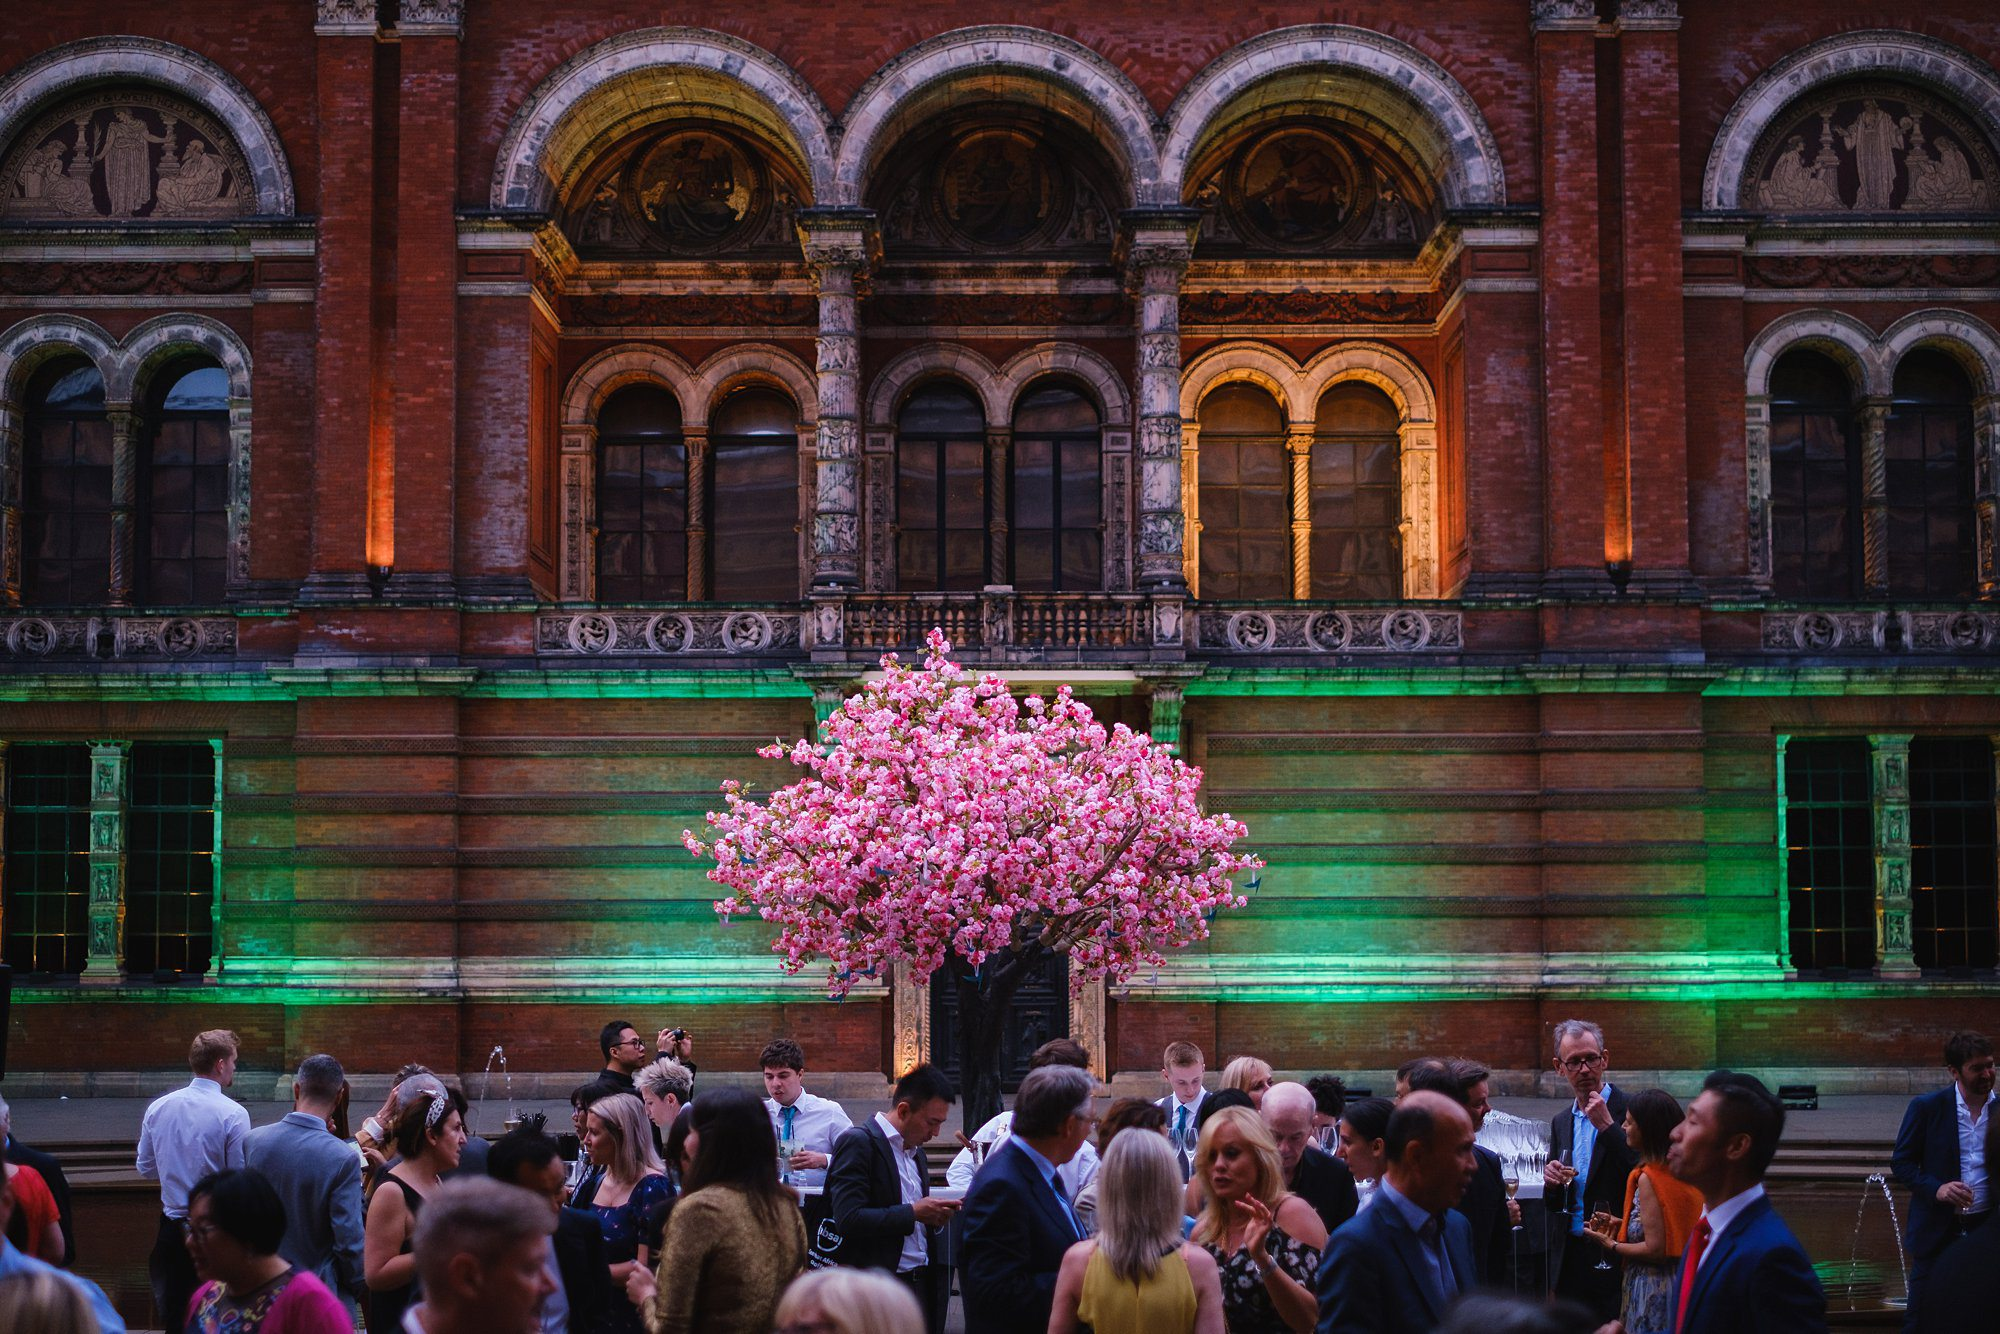 victoria albert event photographer london 053 - Summer party at the V&A Museum